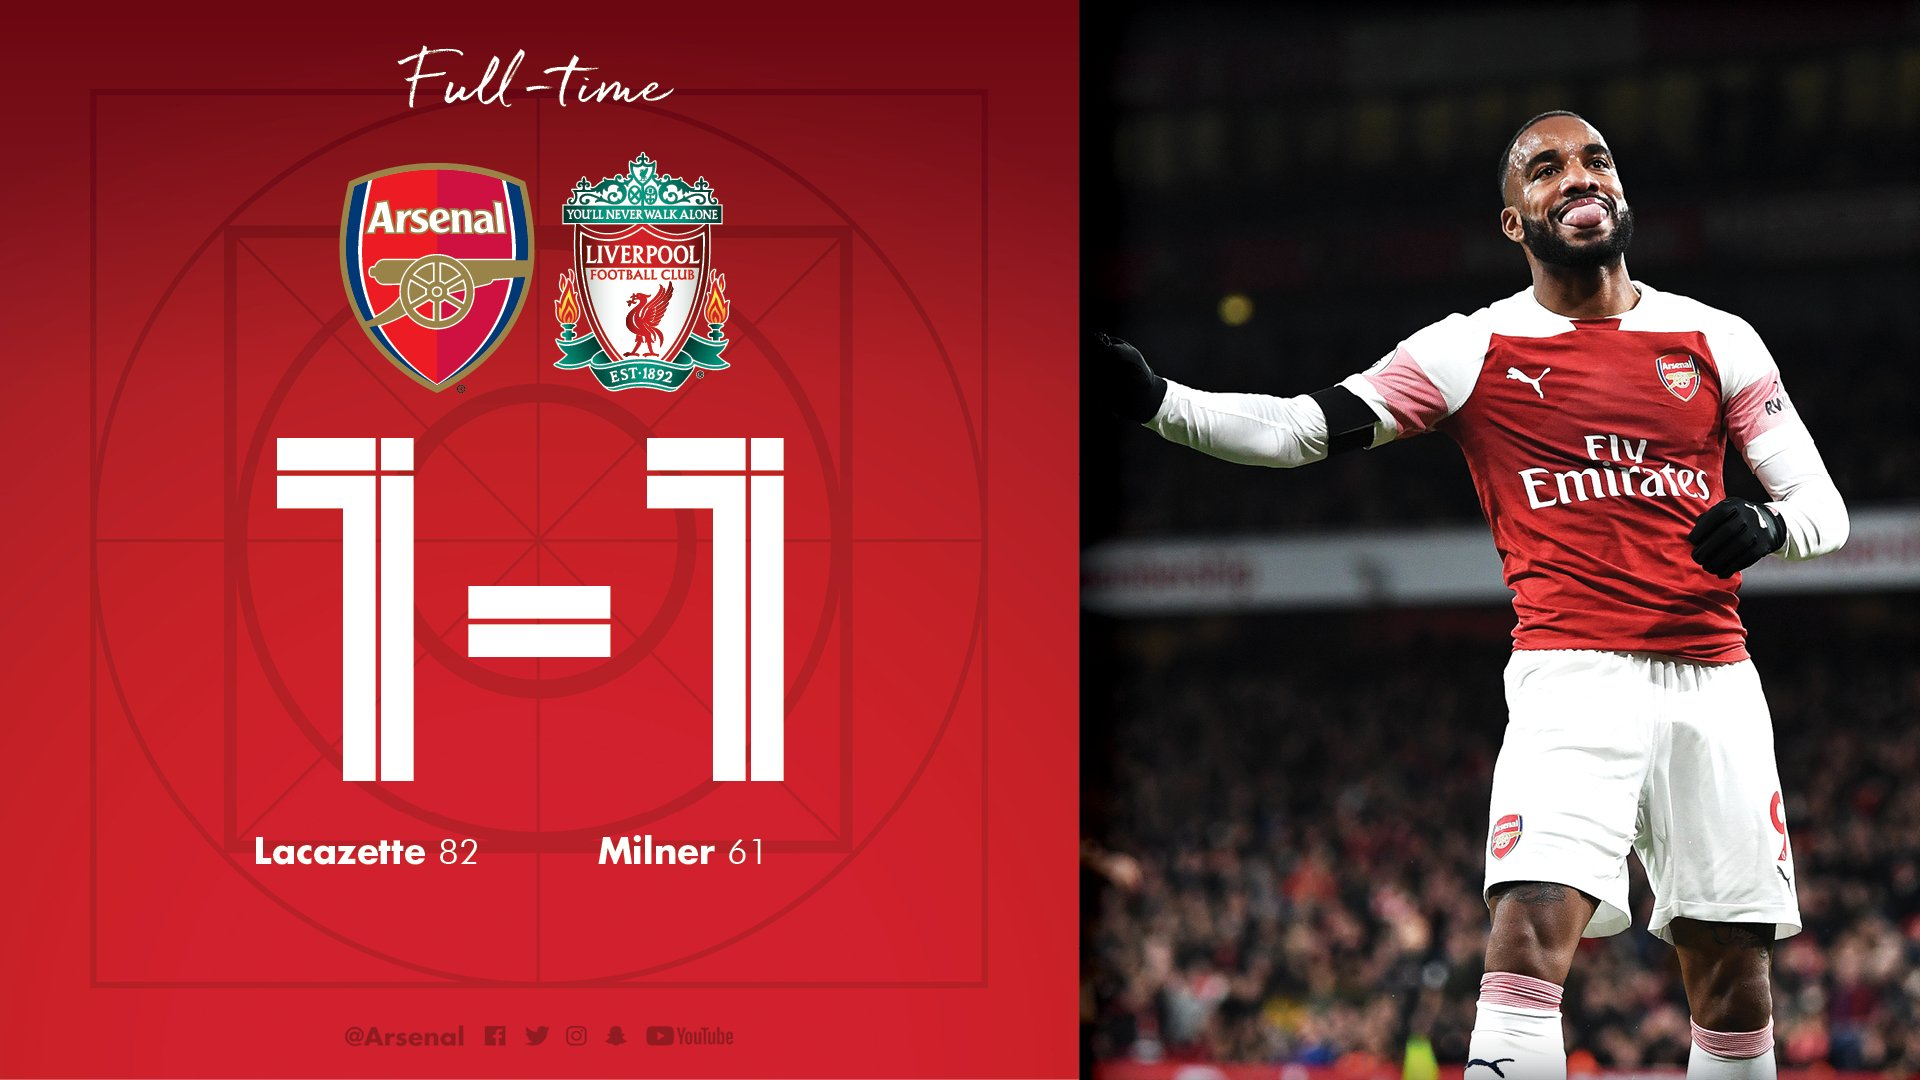 Arsenal 1 Liverpool 1